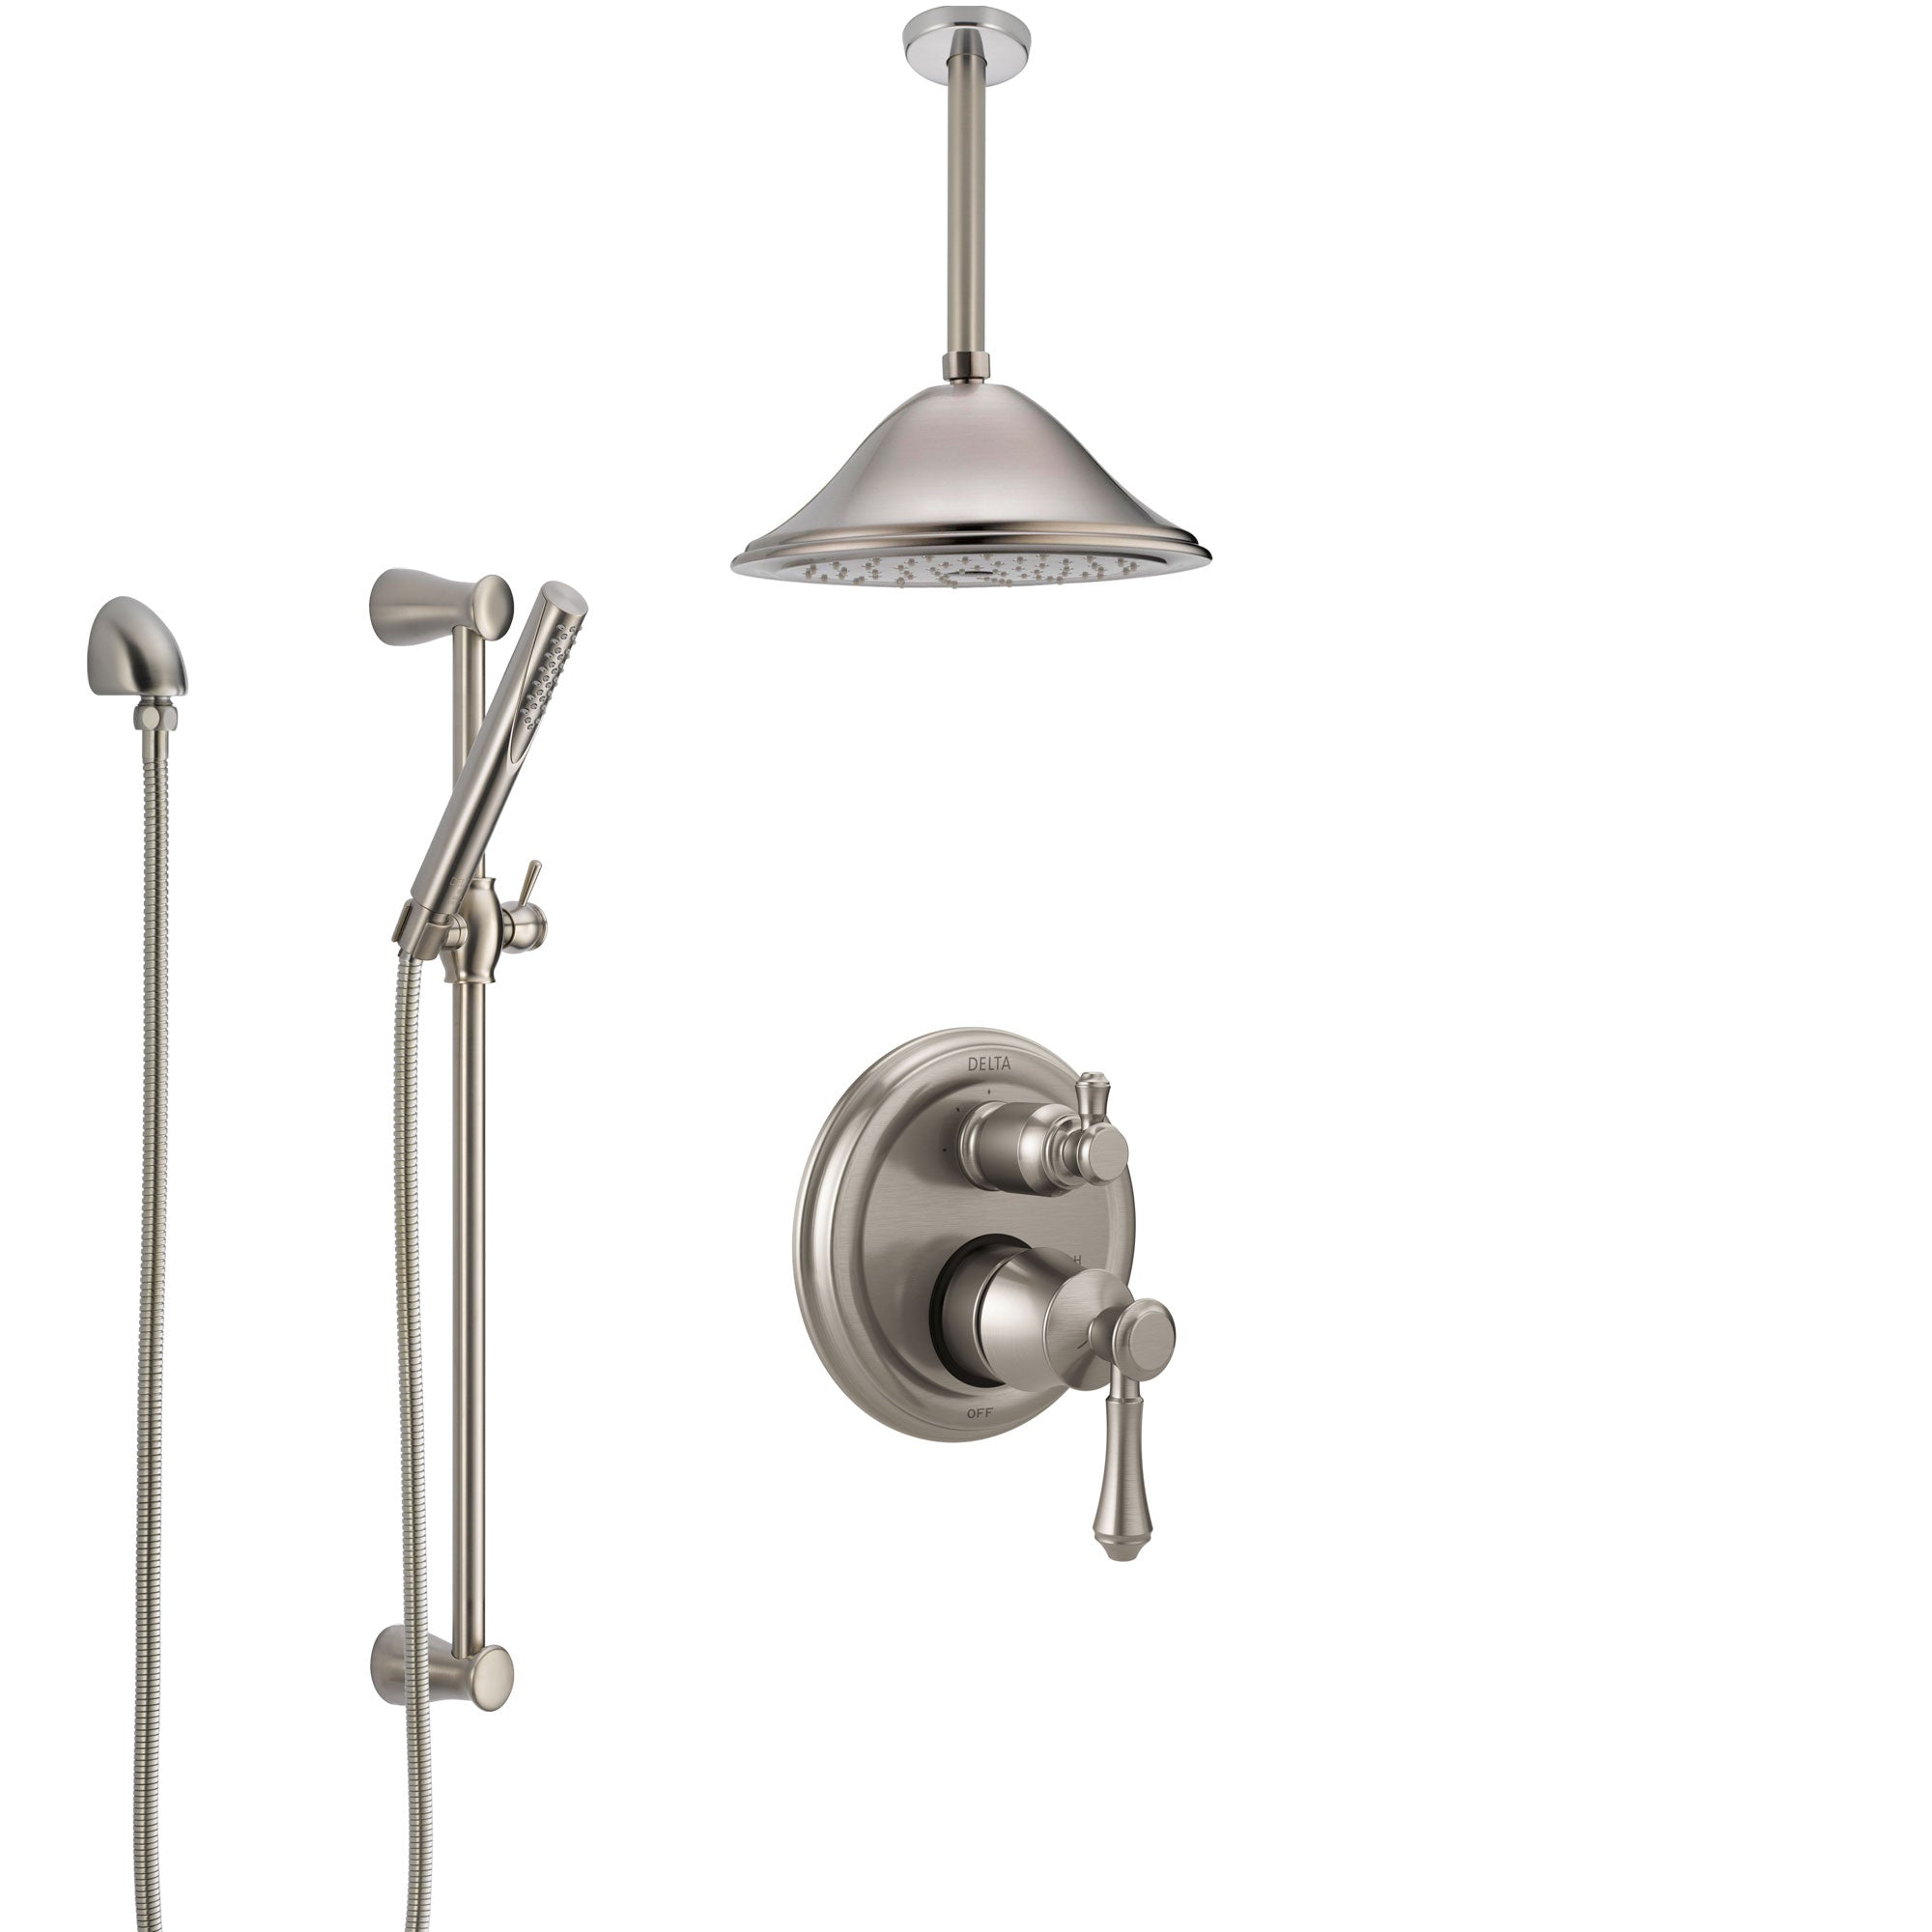 Delta Cassidy Stainless Steel Finish Shower System with Control Handle, Integrated Diverter, Ceiling Mount Showerhead, and Hand Shower SS24897SS7